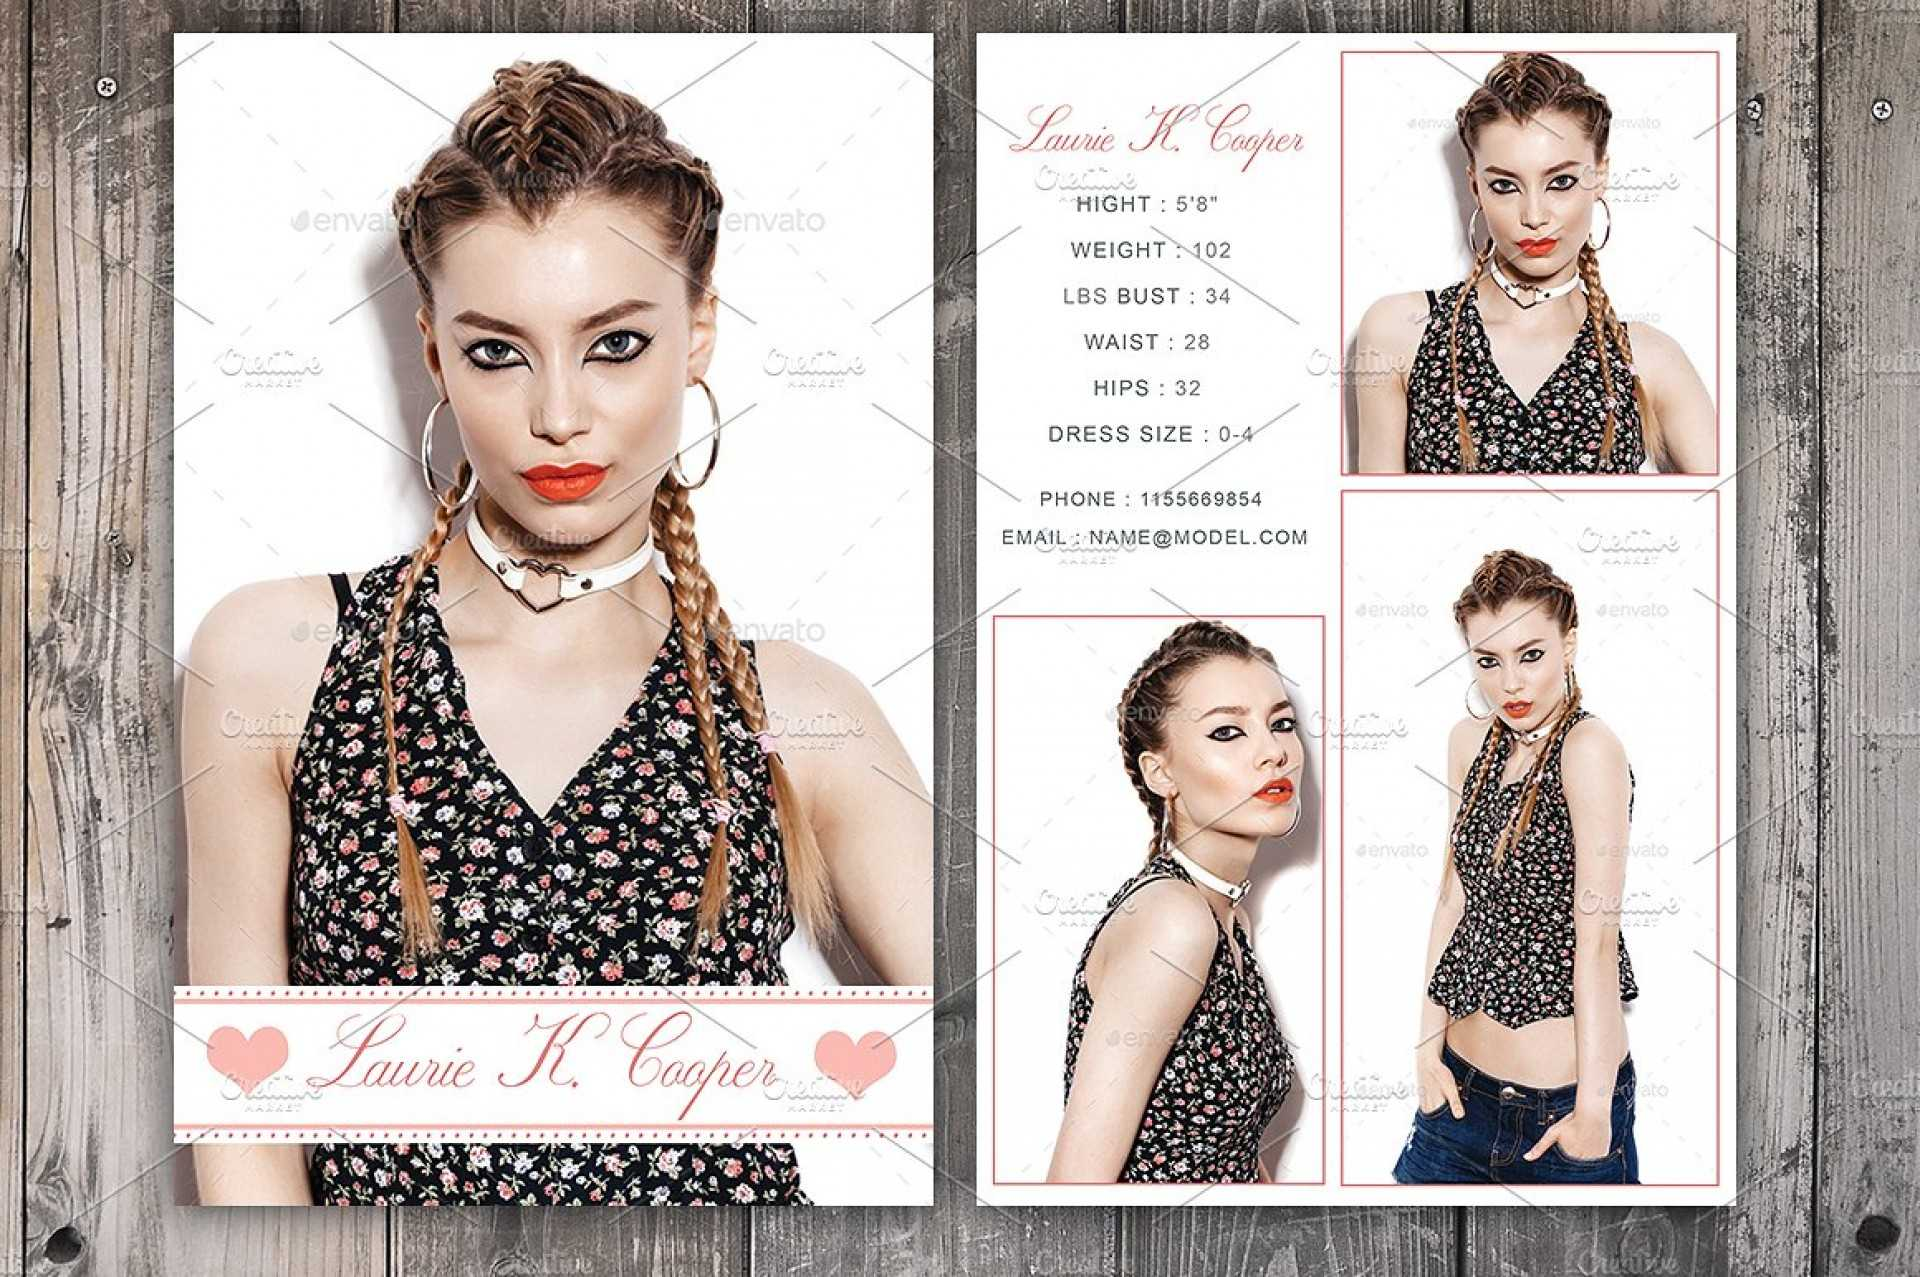 Free Model Comp Card Templates - C Punkt With Regard To Free Model Comp Card Template Psd